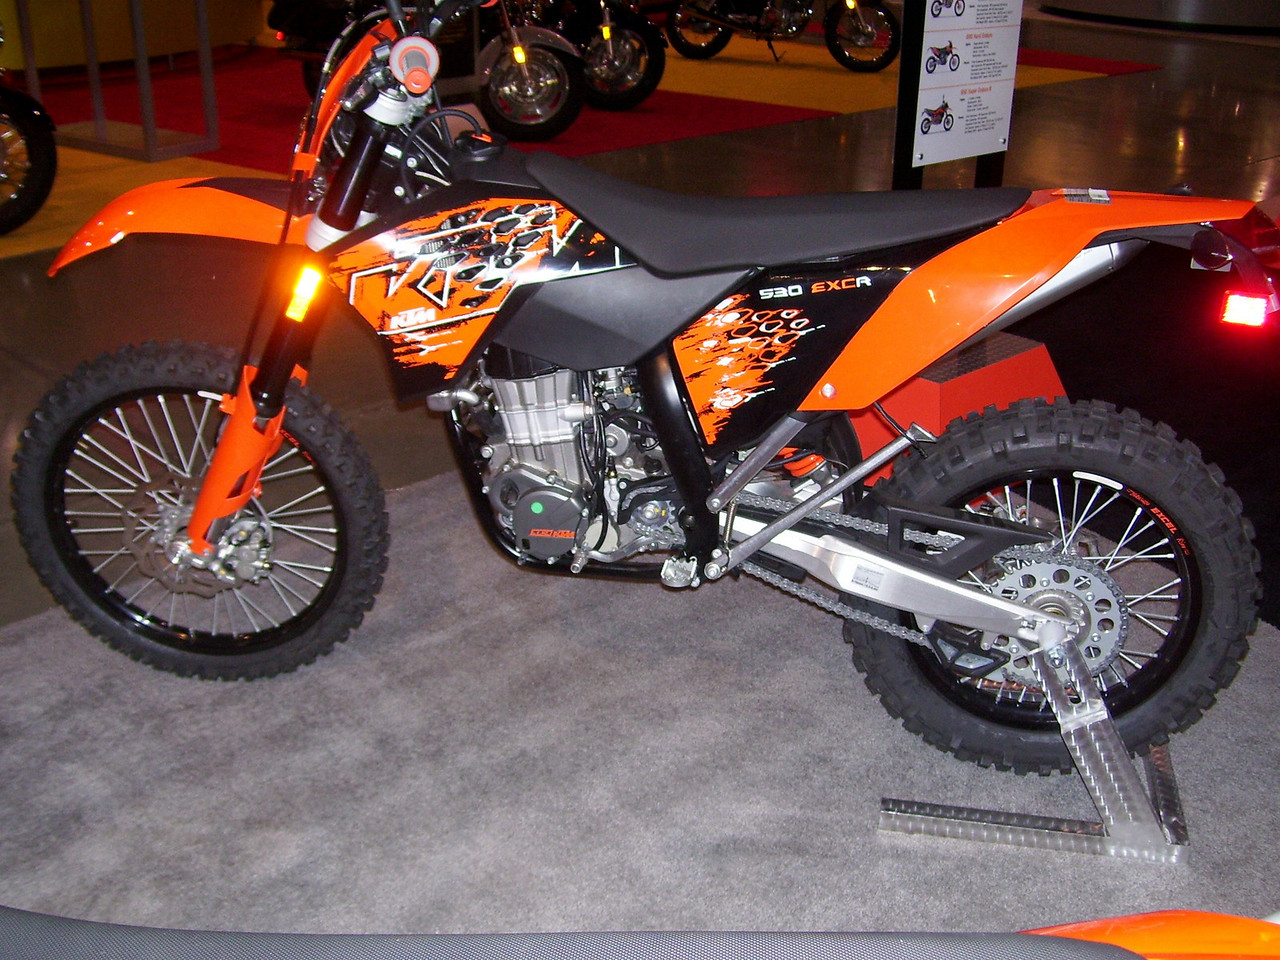 This is what I would buy if I were looking for a new trail DS bike. I didn't see anything even close to this KTM 530EXC. For a street legal trail machine, this is it guys. A bit spendy however.